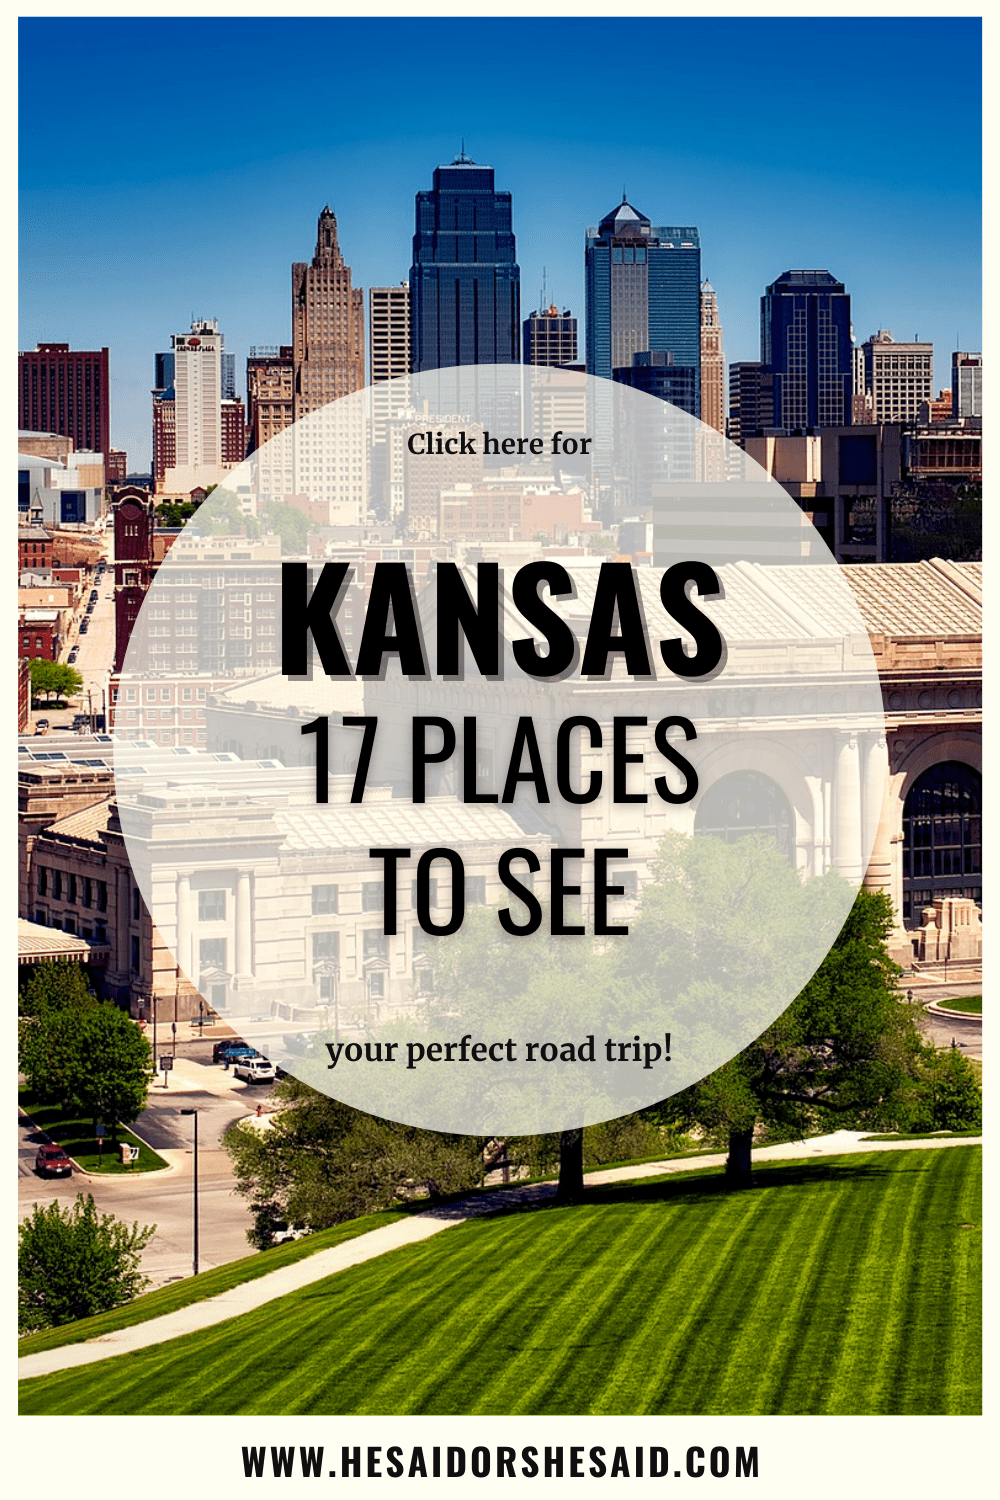 17 Places to see in Kansas by hesaidorshesaid